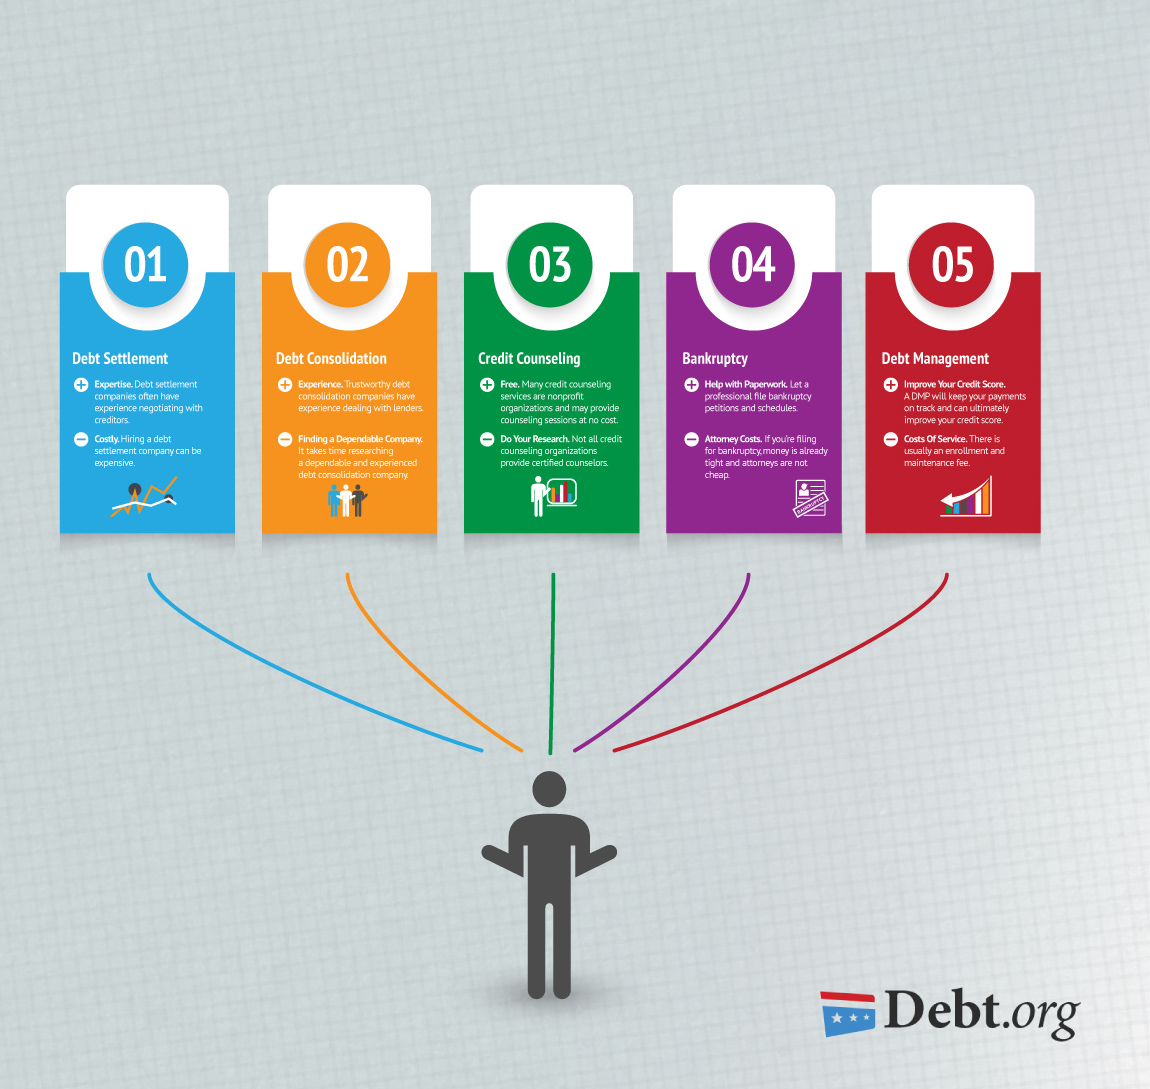 Debt Relief options, what to choose?